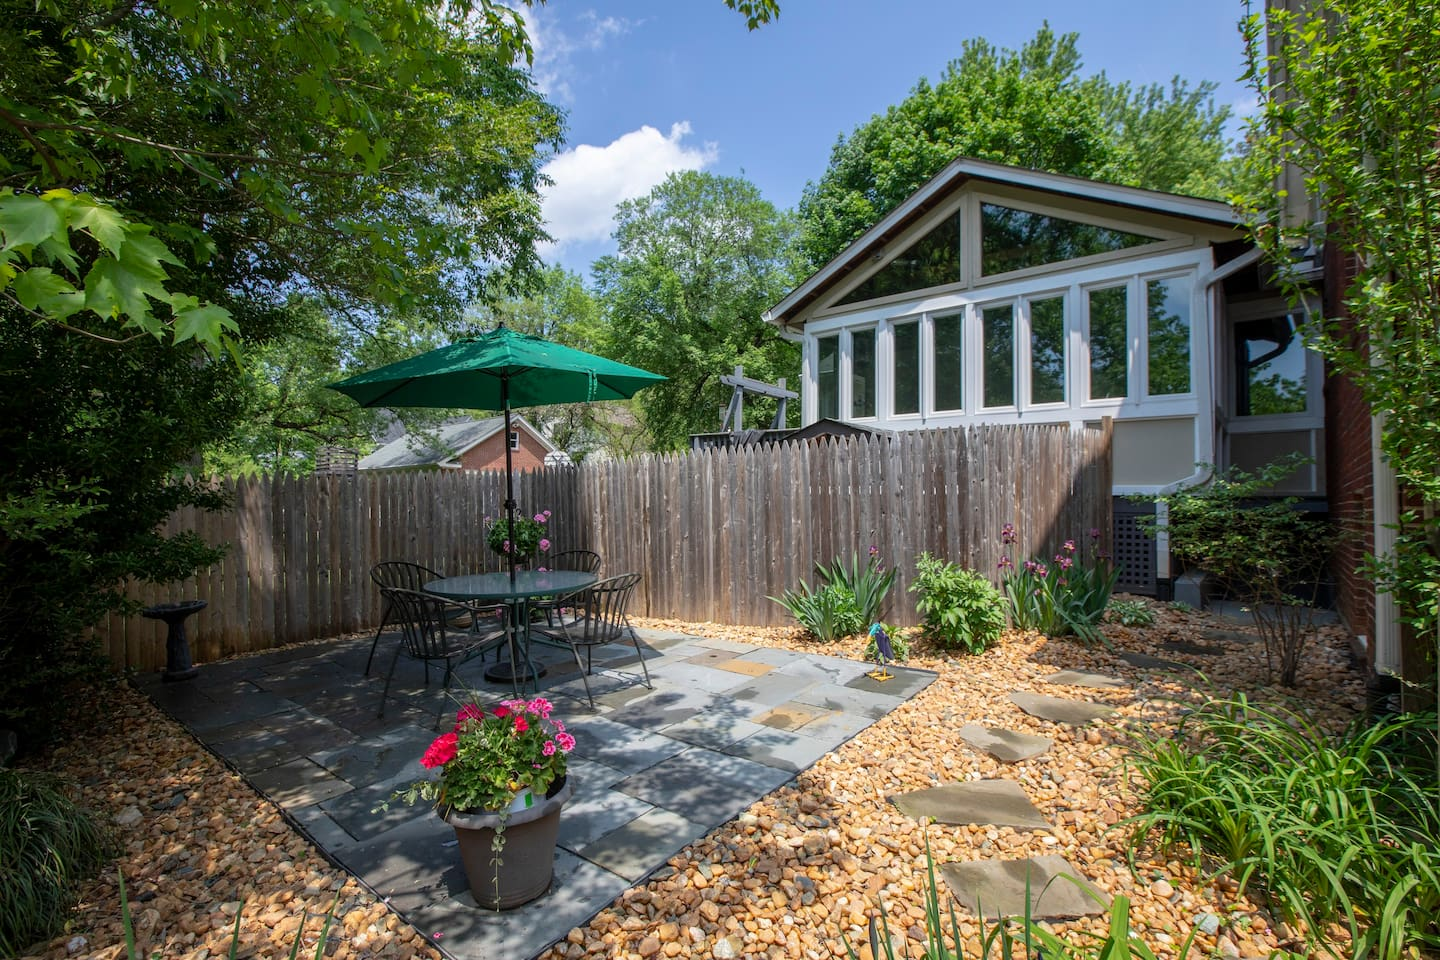 Private entrance and patio